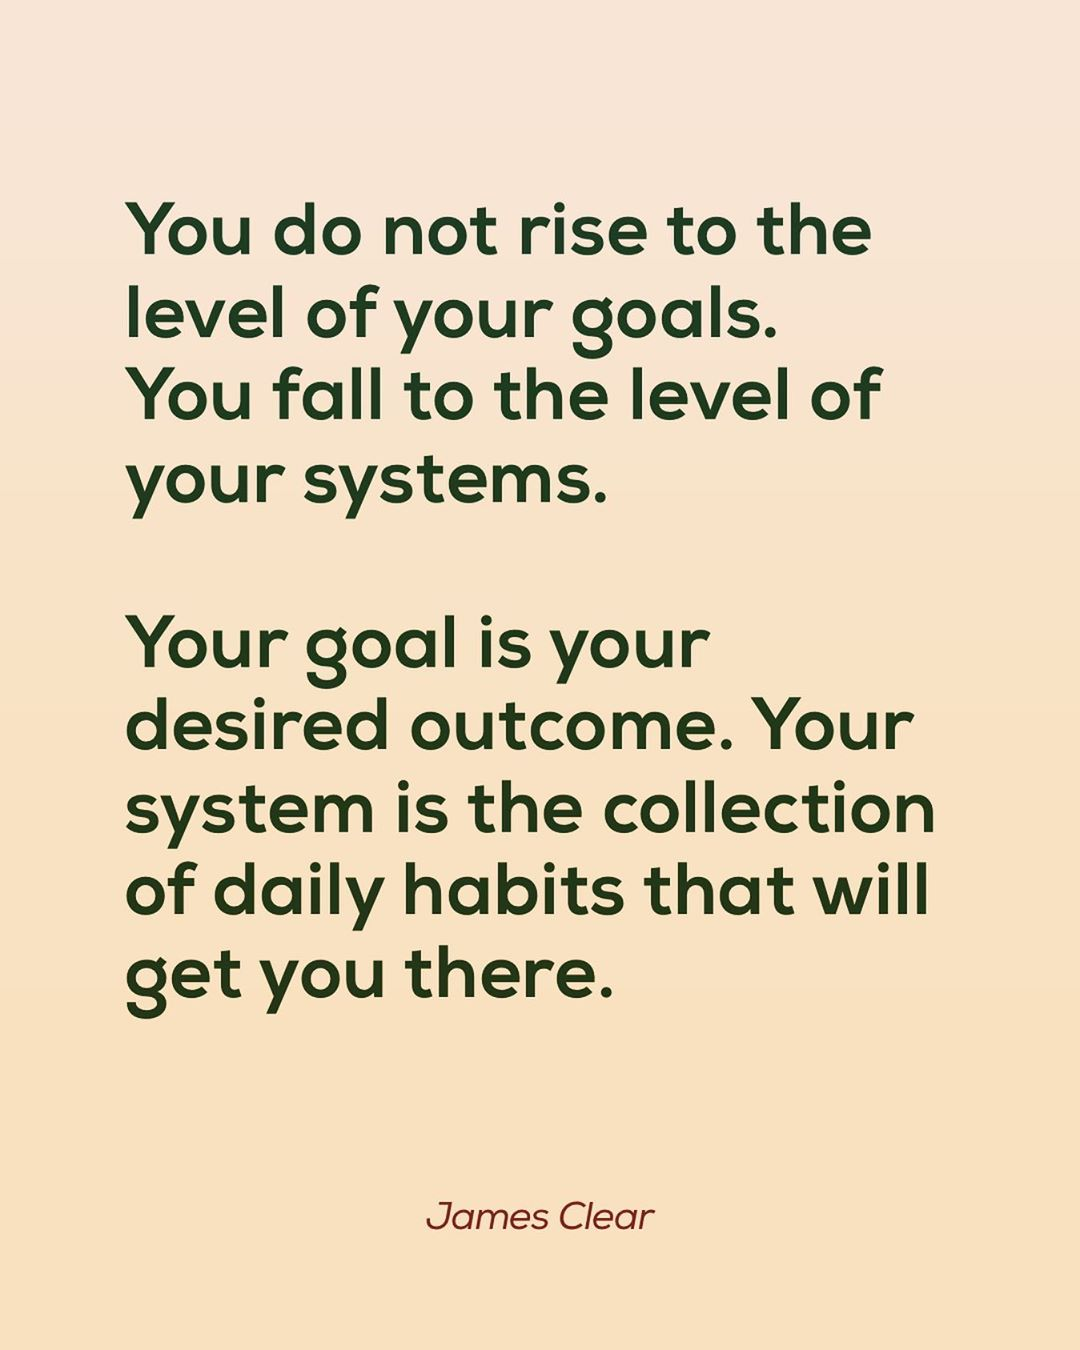 Systems quote from Atomic Habits